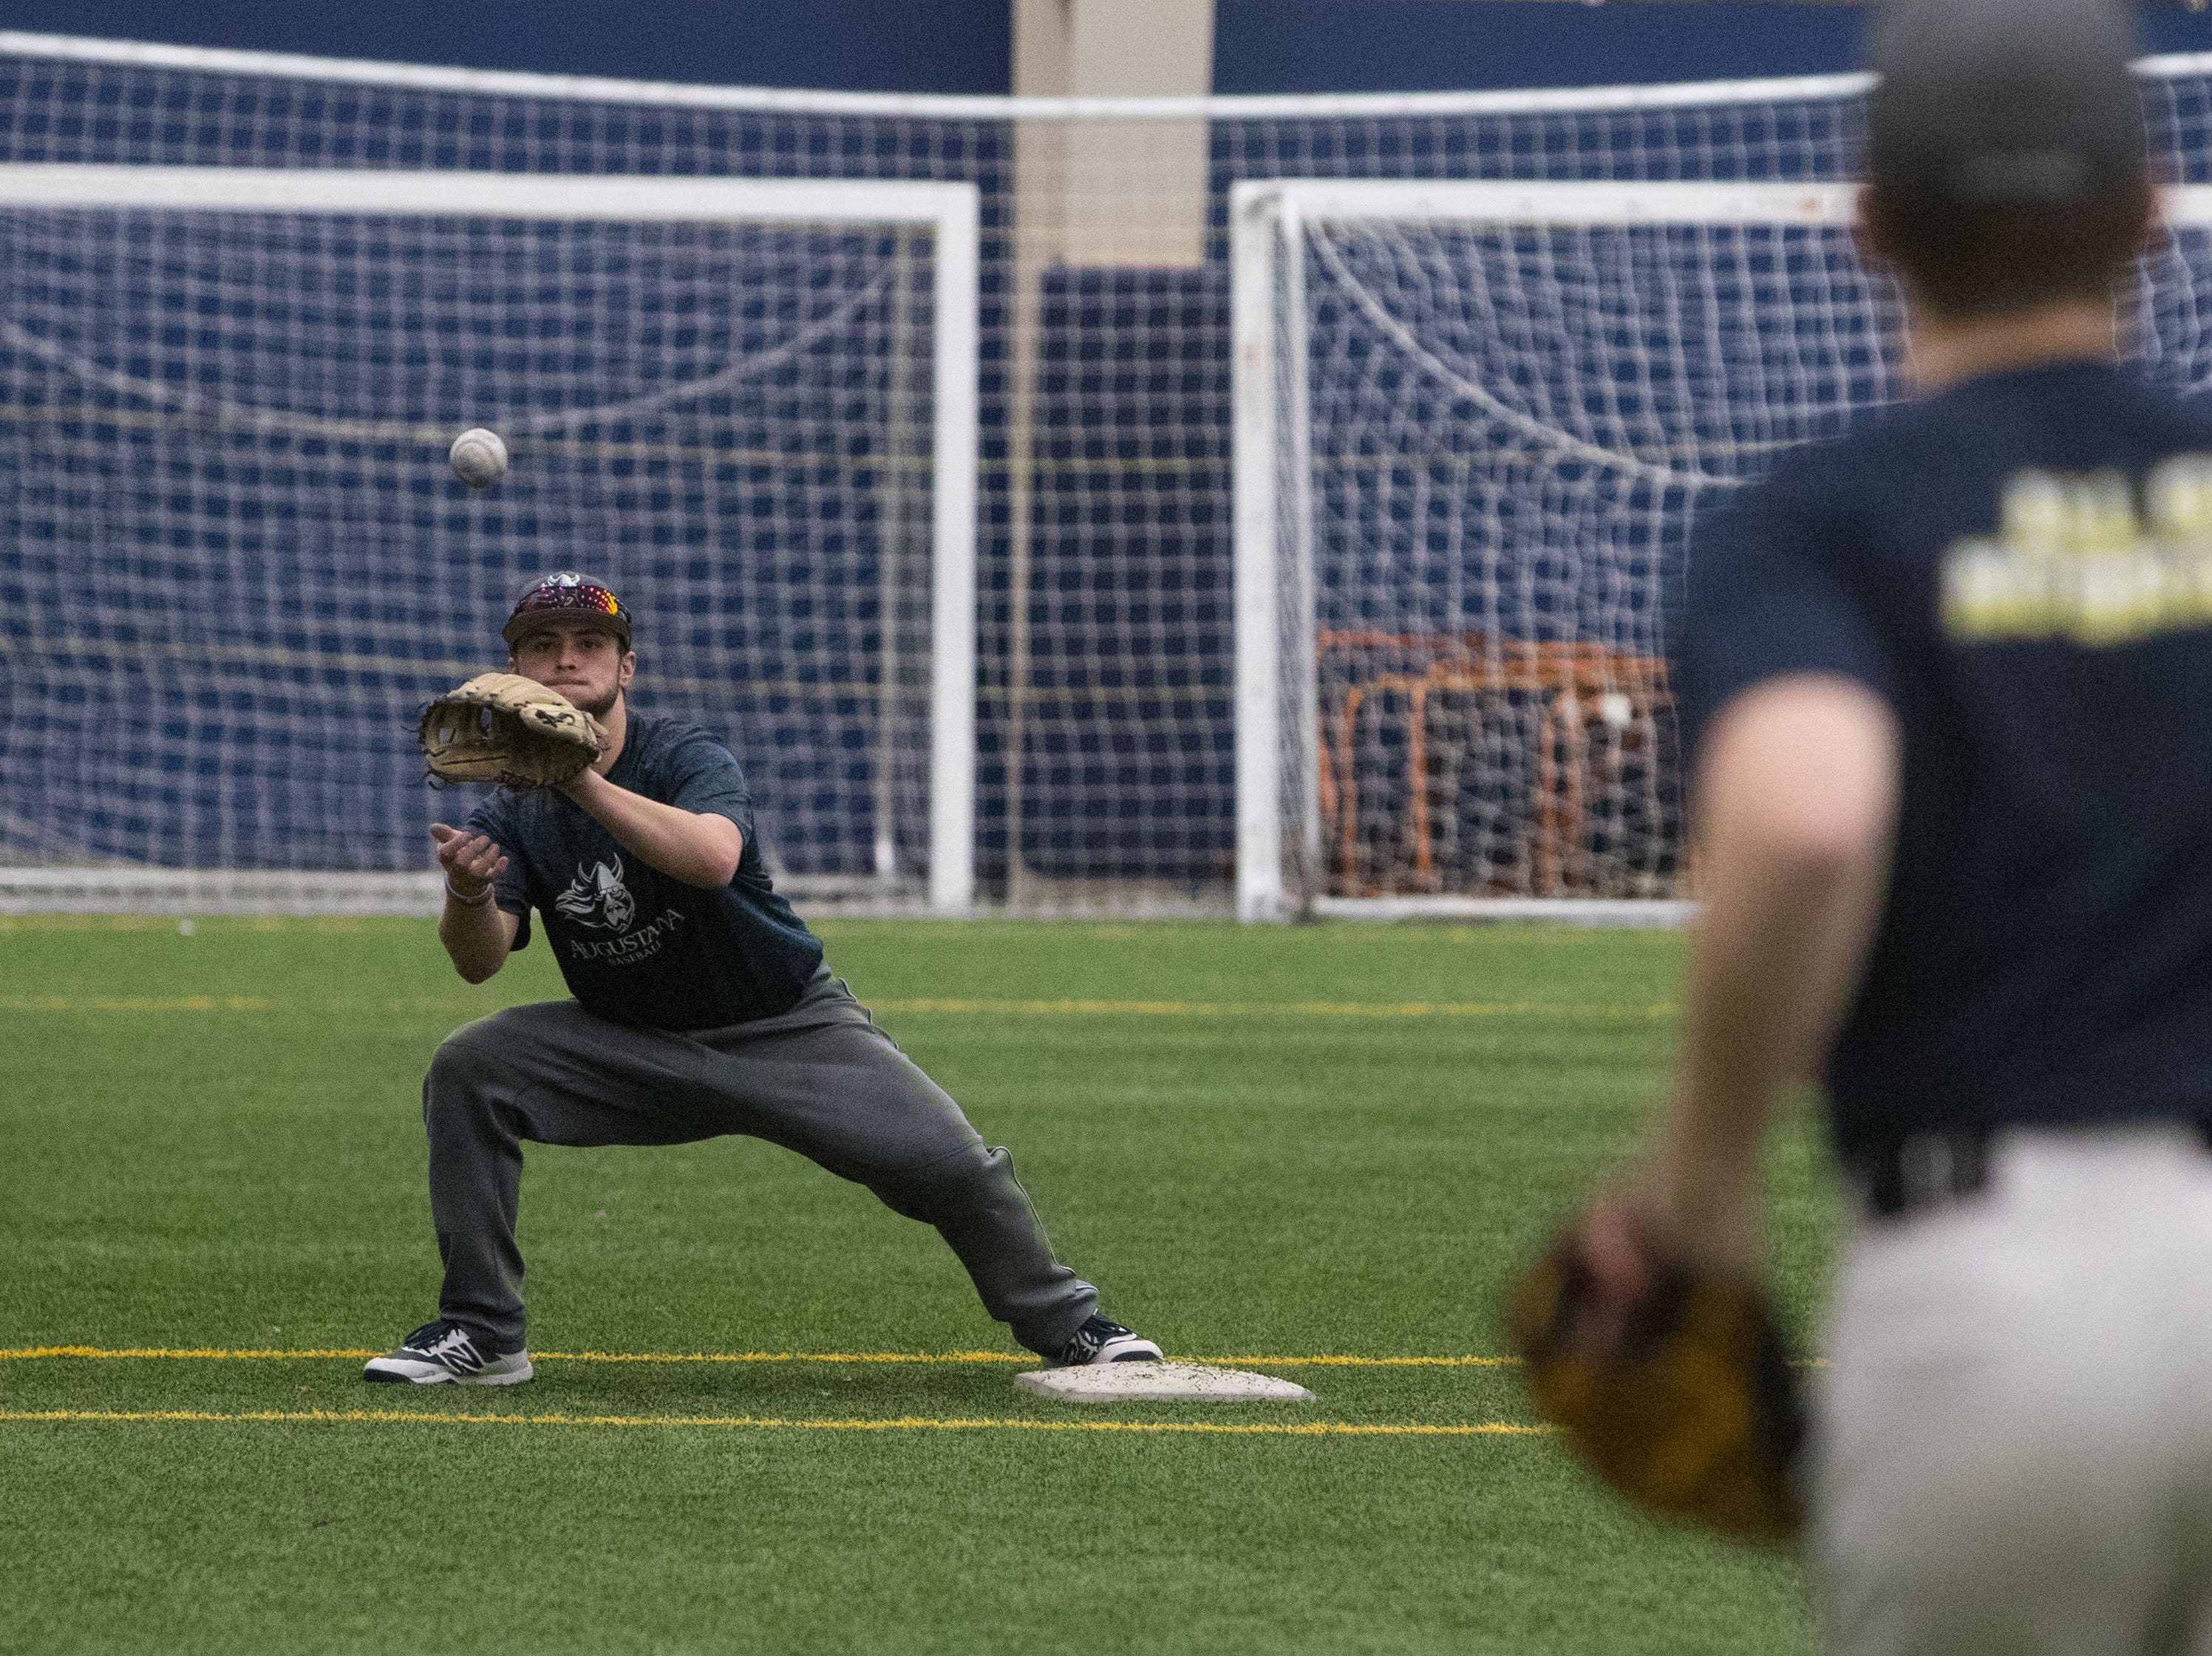 Ranked No. 1 in the nation, Augustana baseball sets out to repeat as national champs